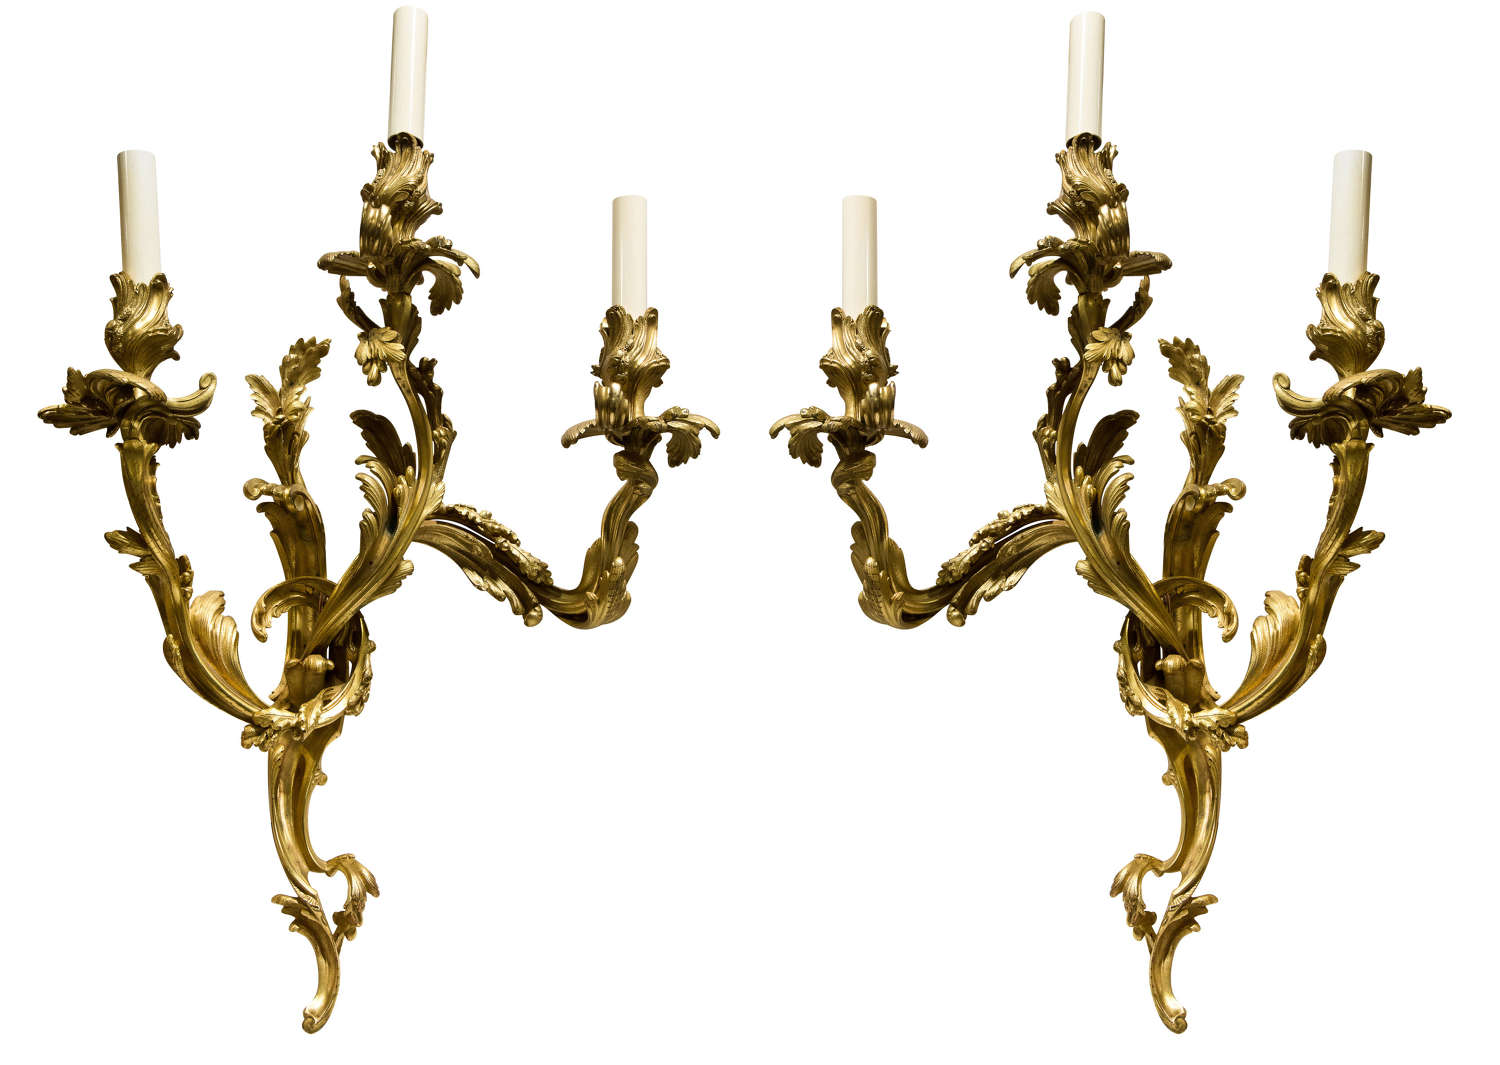 Pair of French Ormolu Wall Sconces